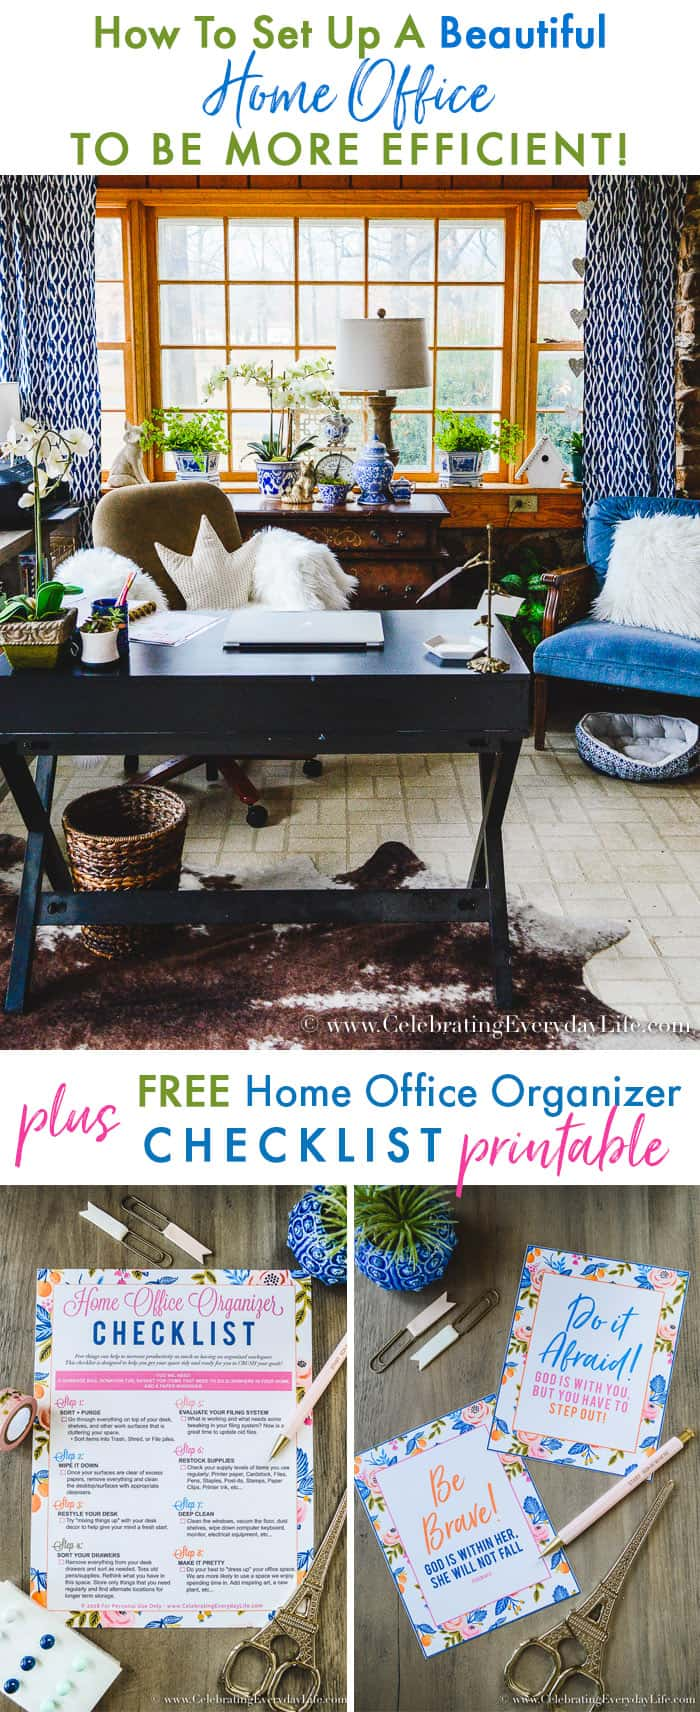 How To Set Up A Beautiful Home Office To Be More Efficient